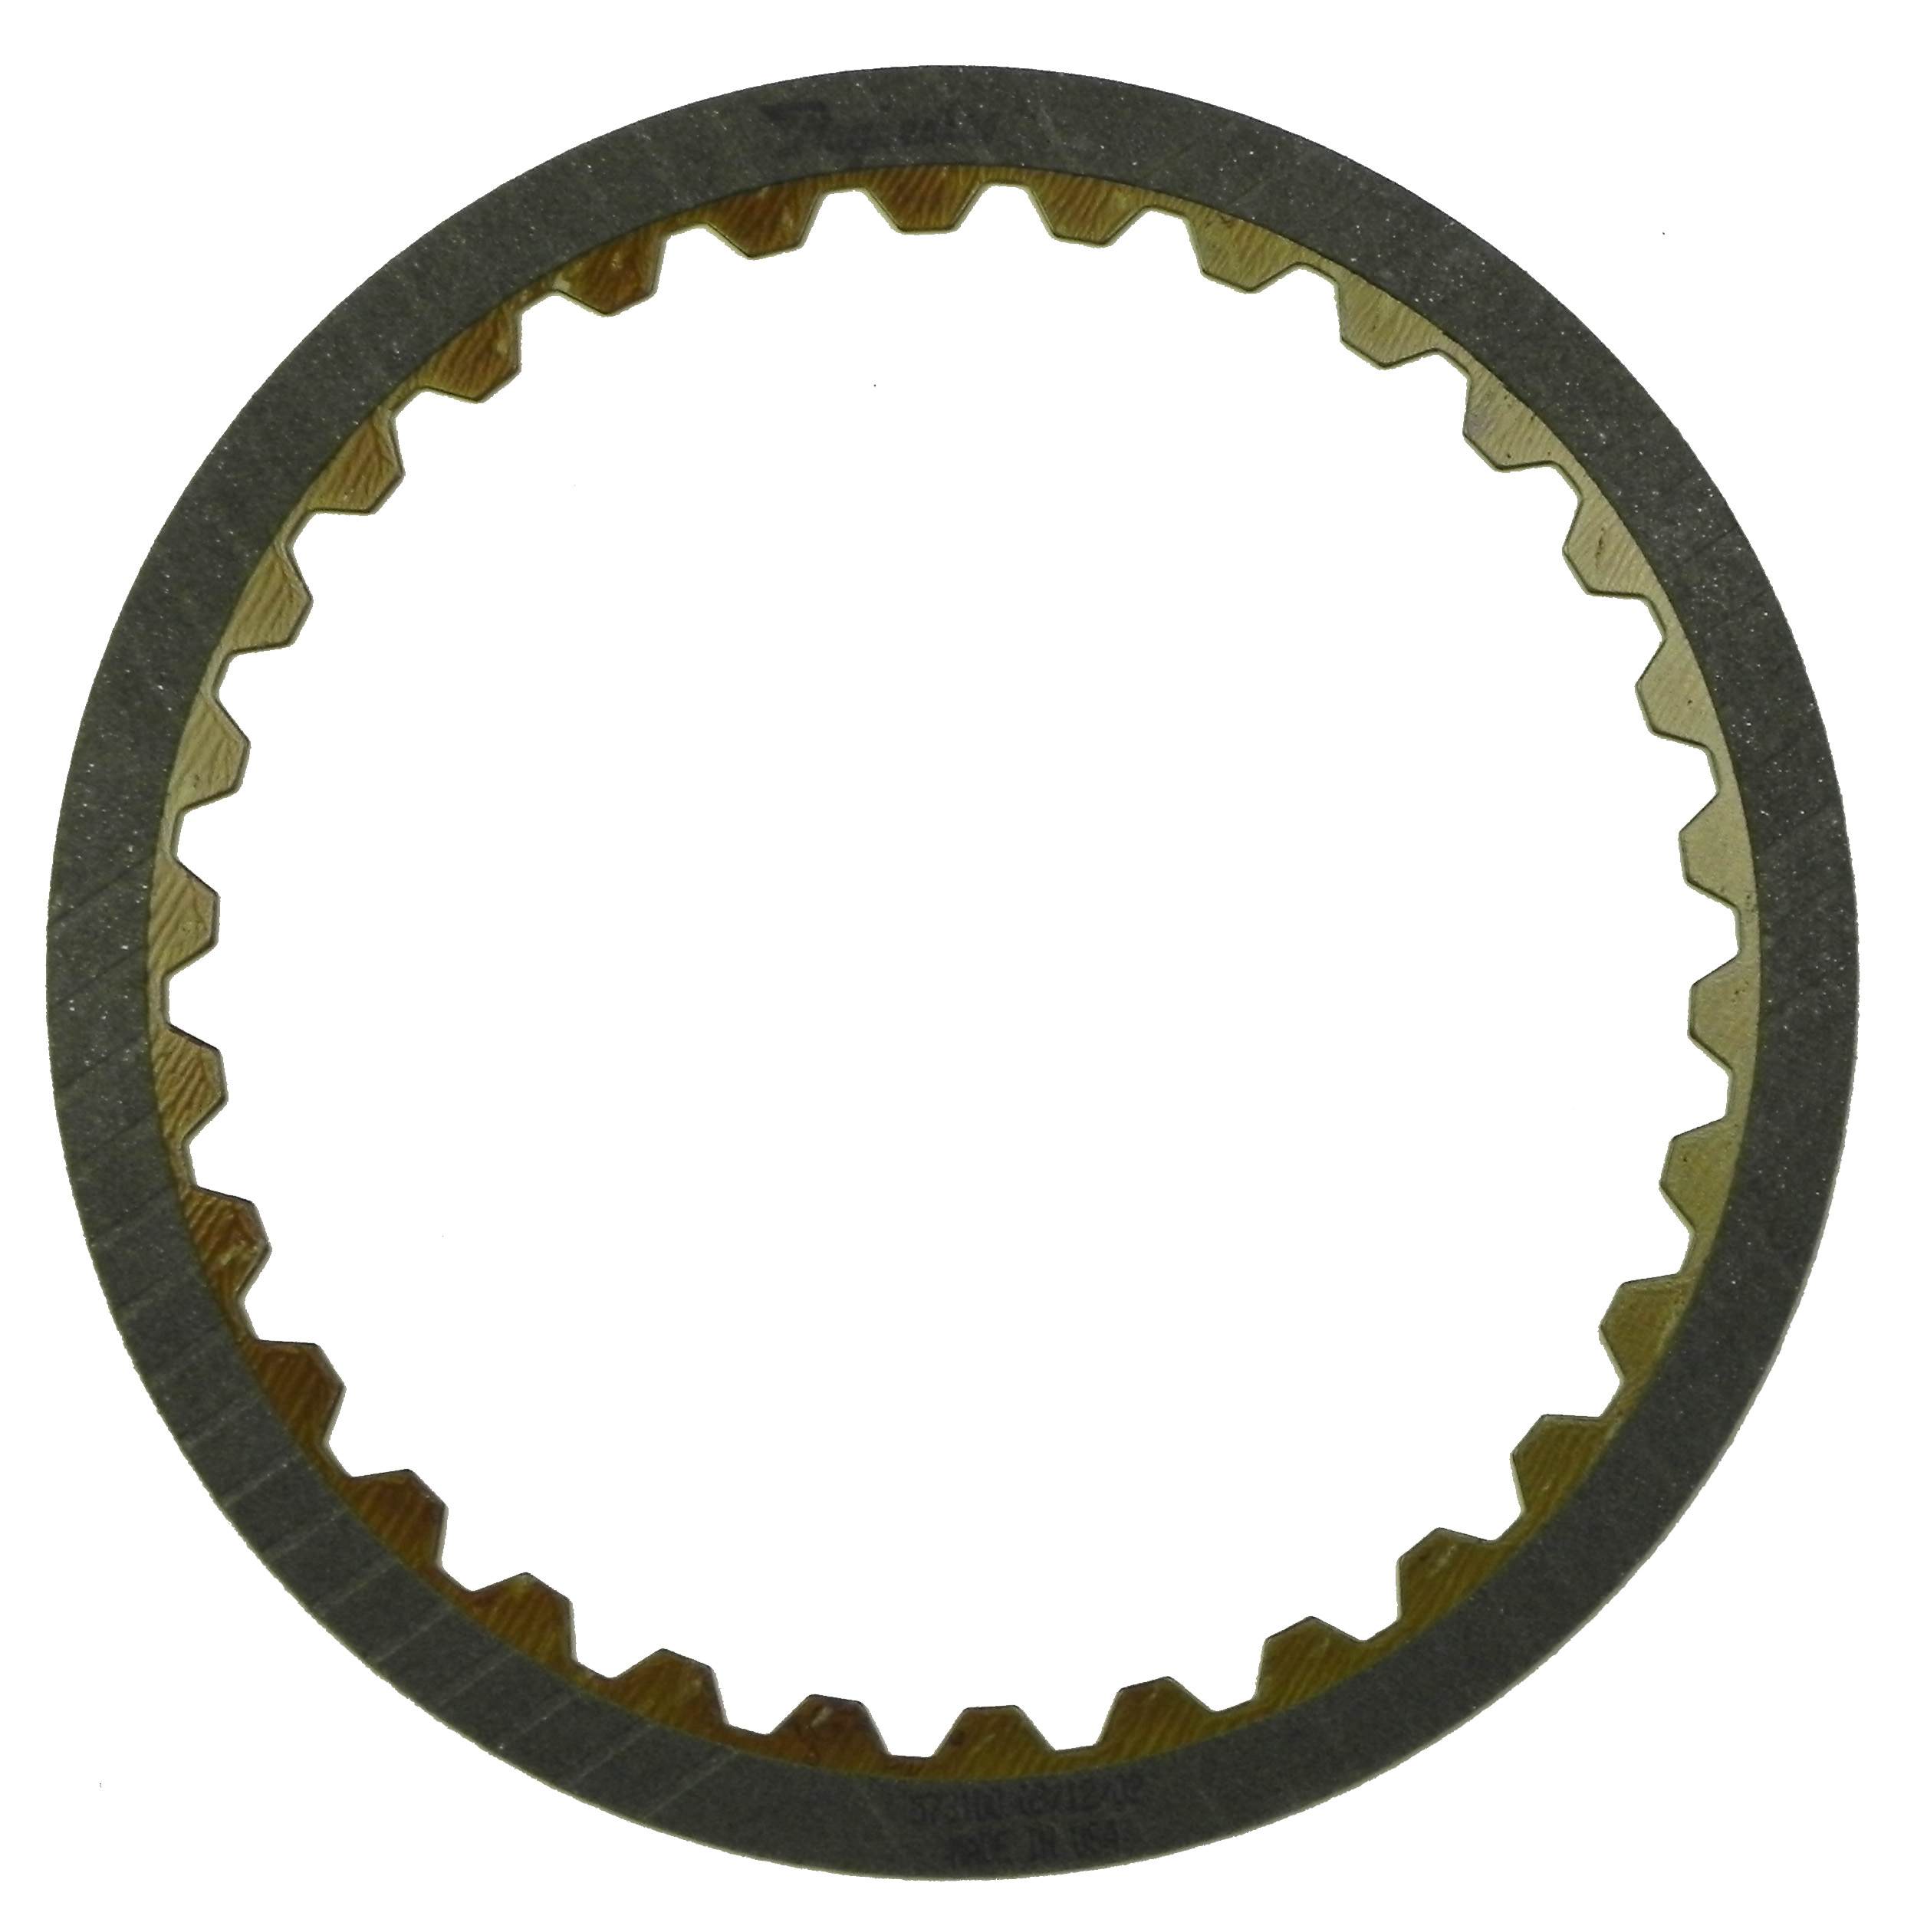 R573100 | 1991-1995 Friction Clutch Plate High Energy Low, Reverse High Energy